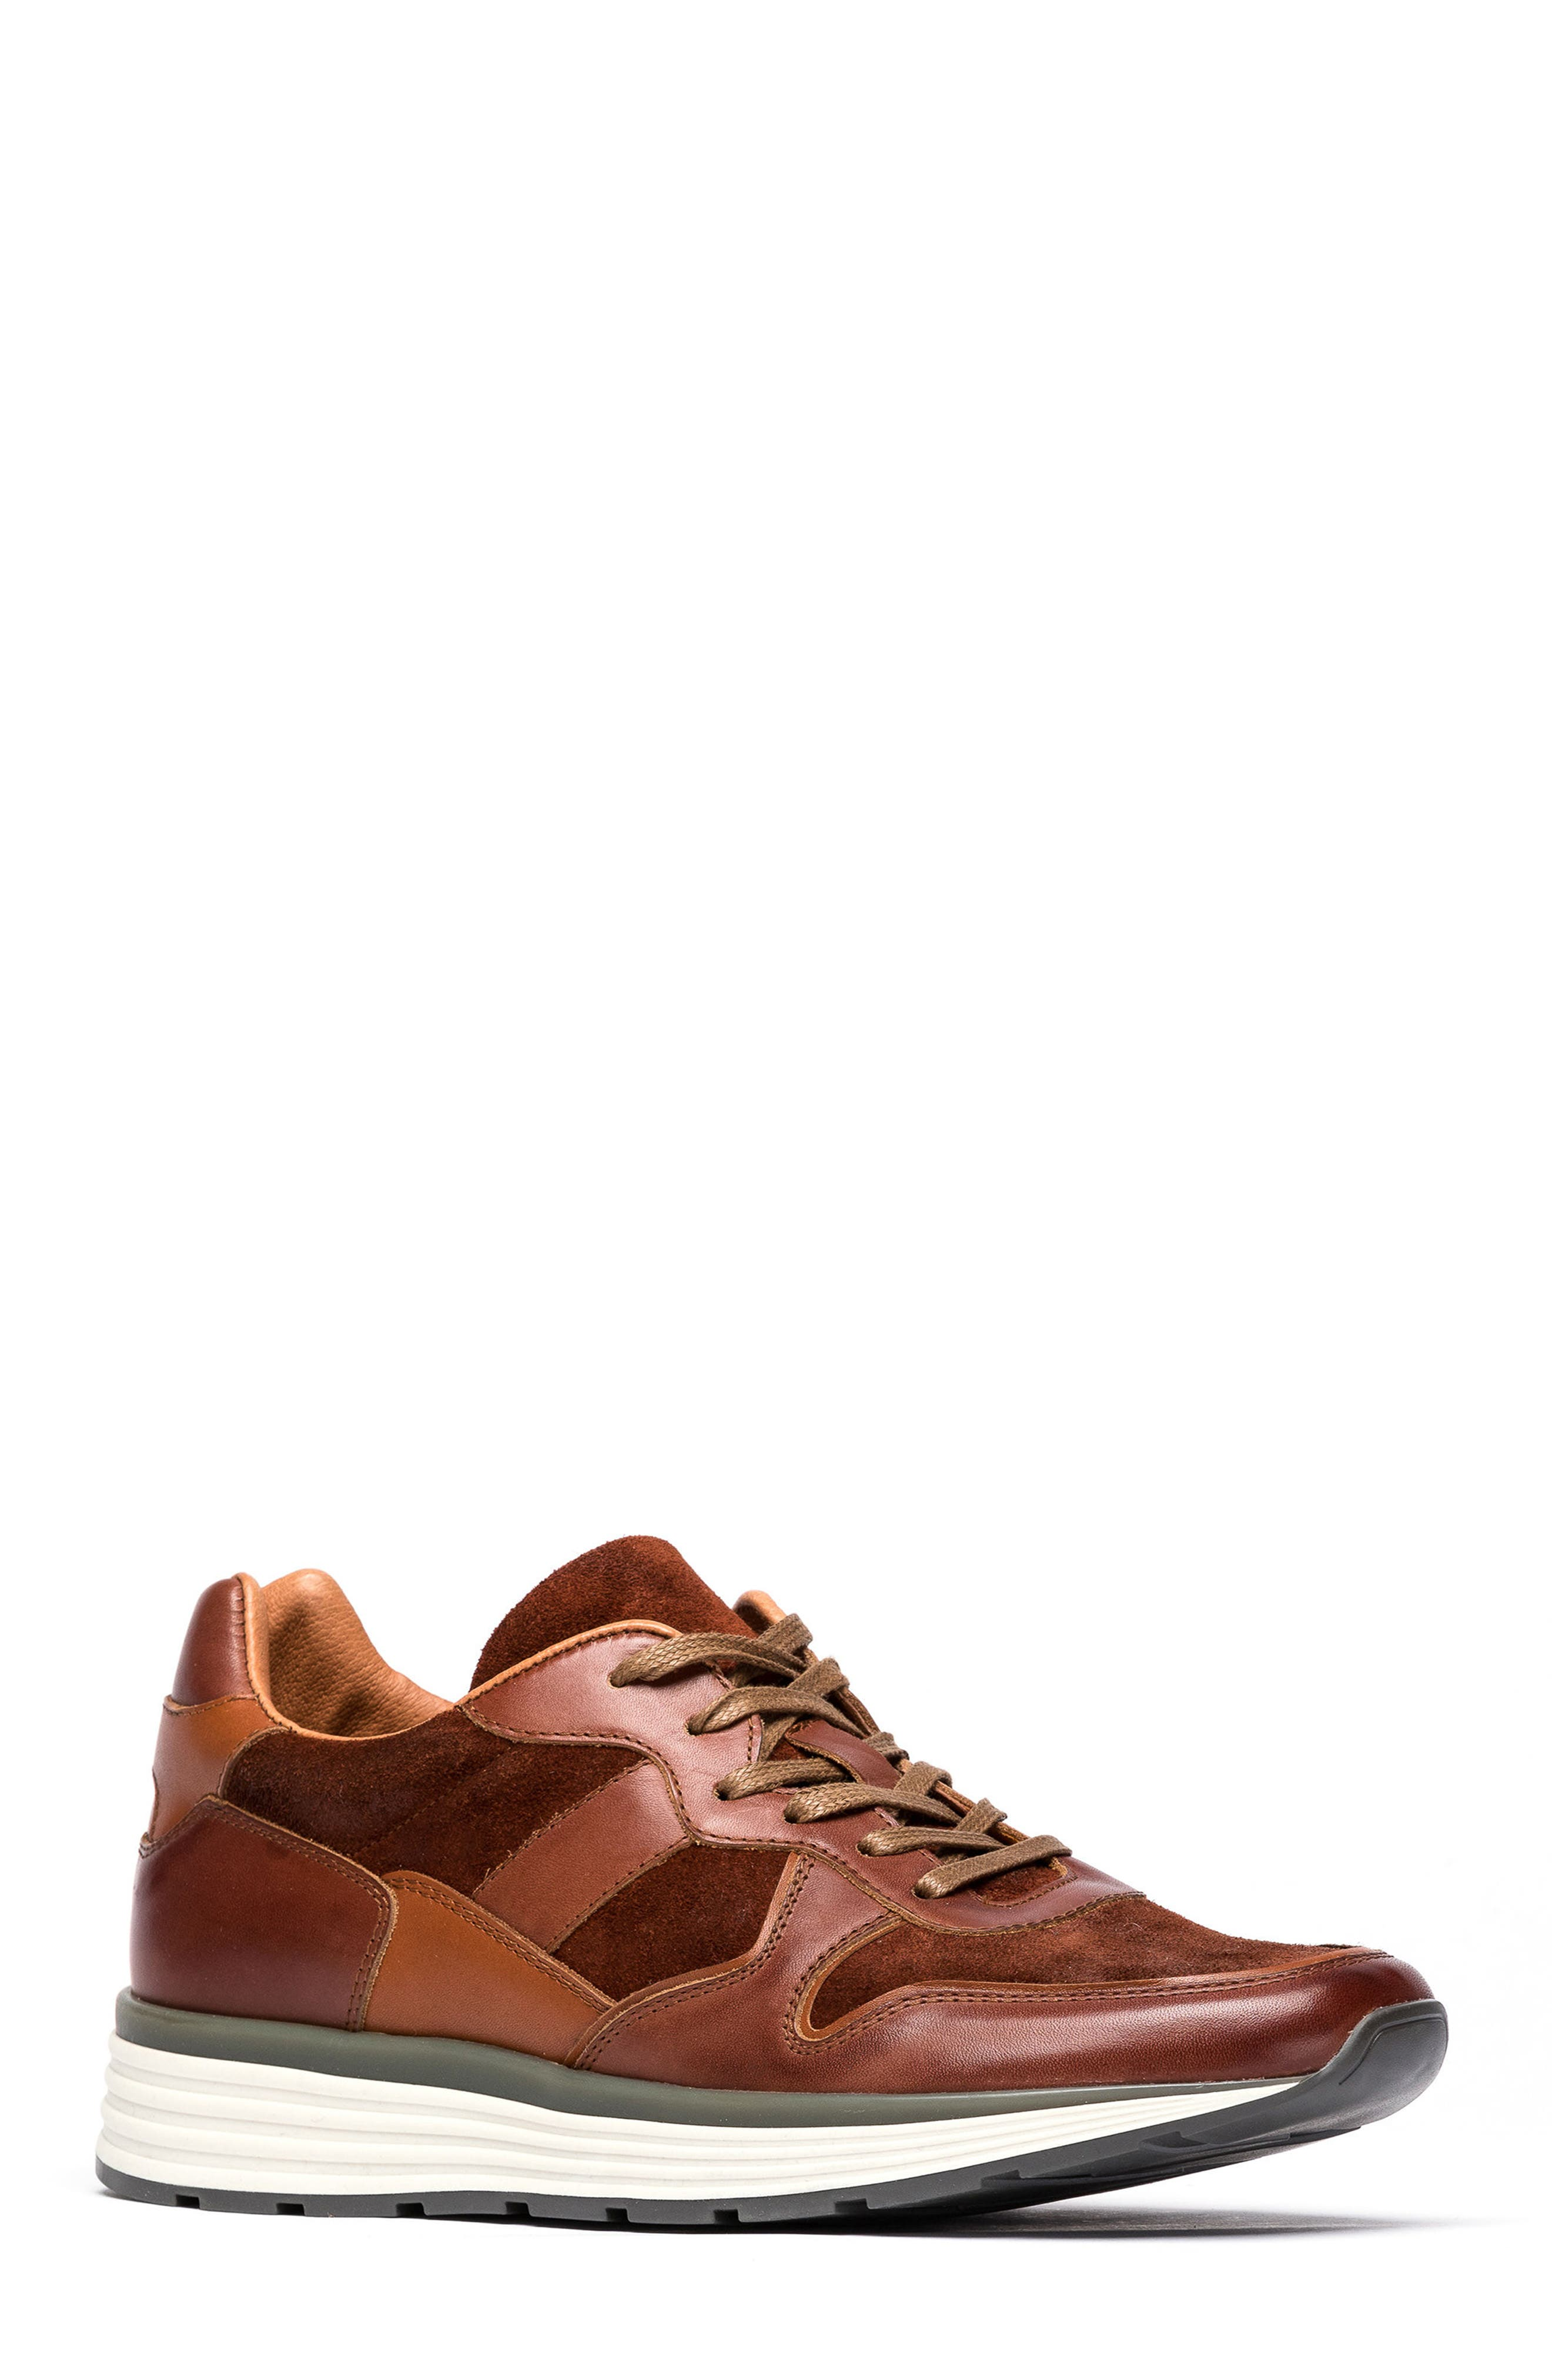 Hickory Sneaker,                         Main,                         color, Tan Leather